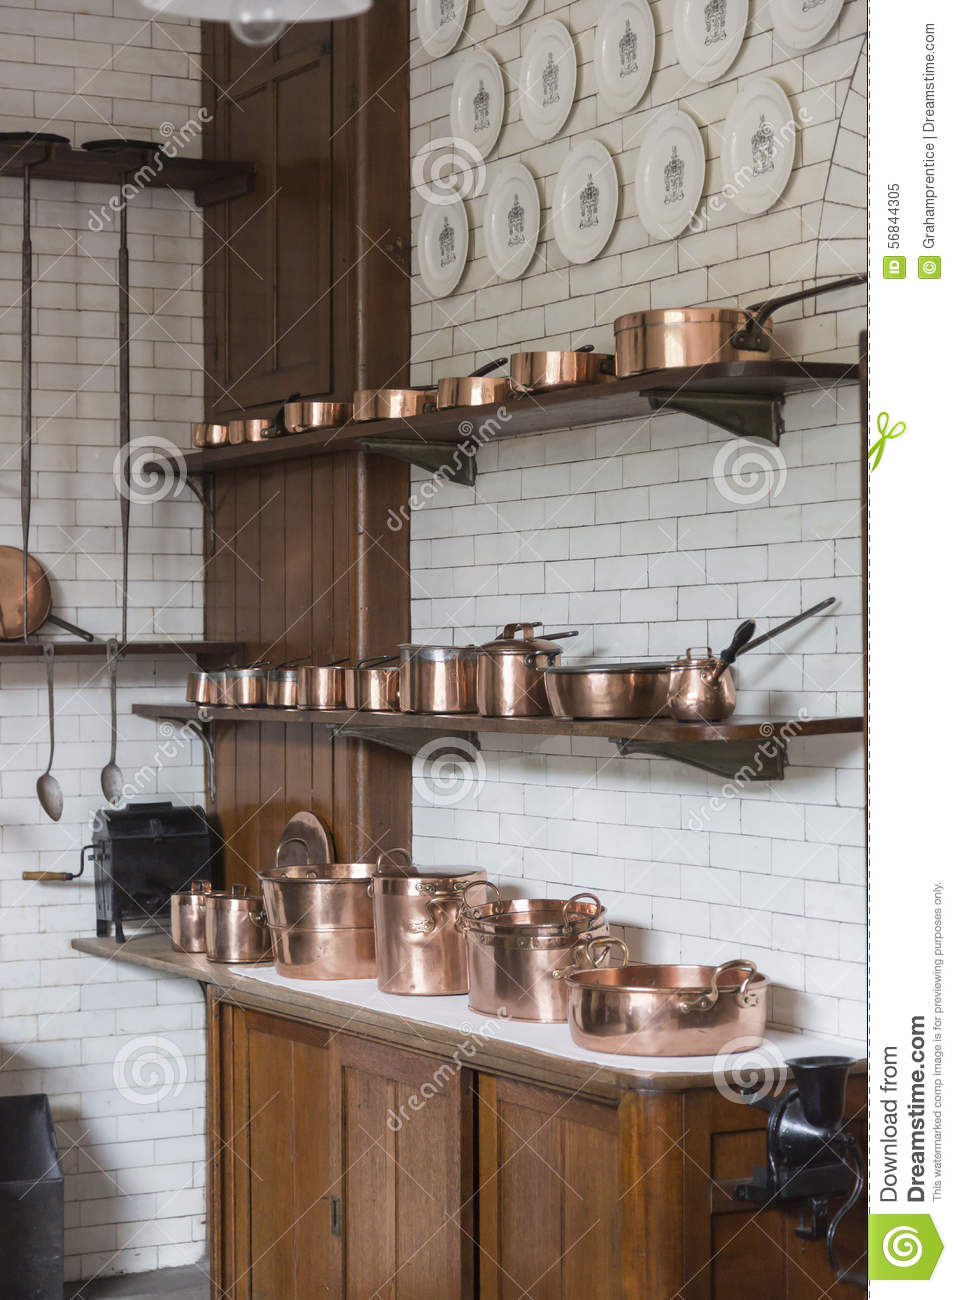 Gentil Download Copper Pots, Pans, Saucepans And Utensils In An Old Fashioned  Kitchen Stock